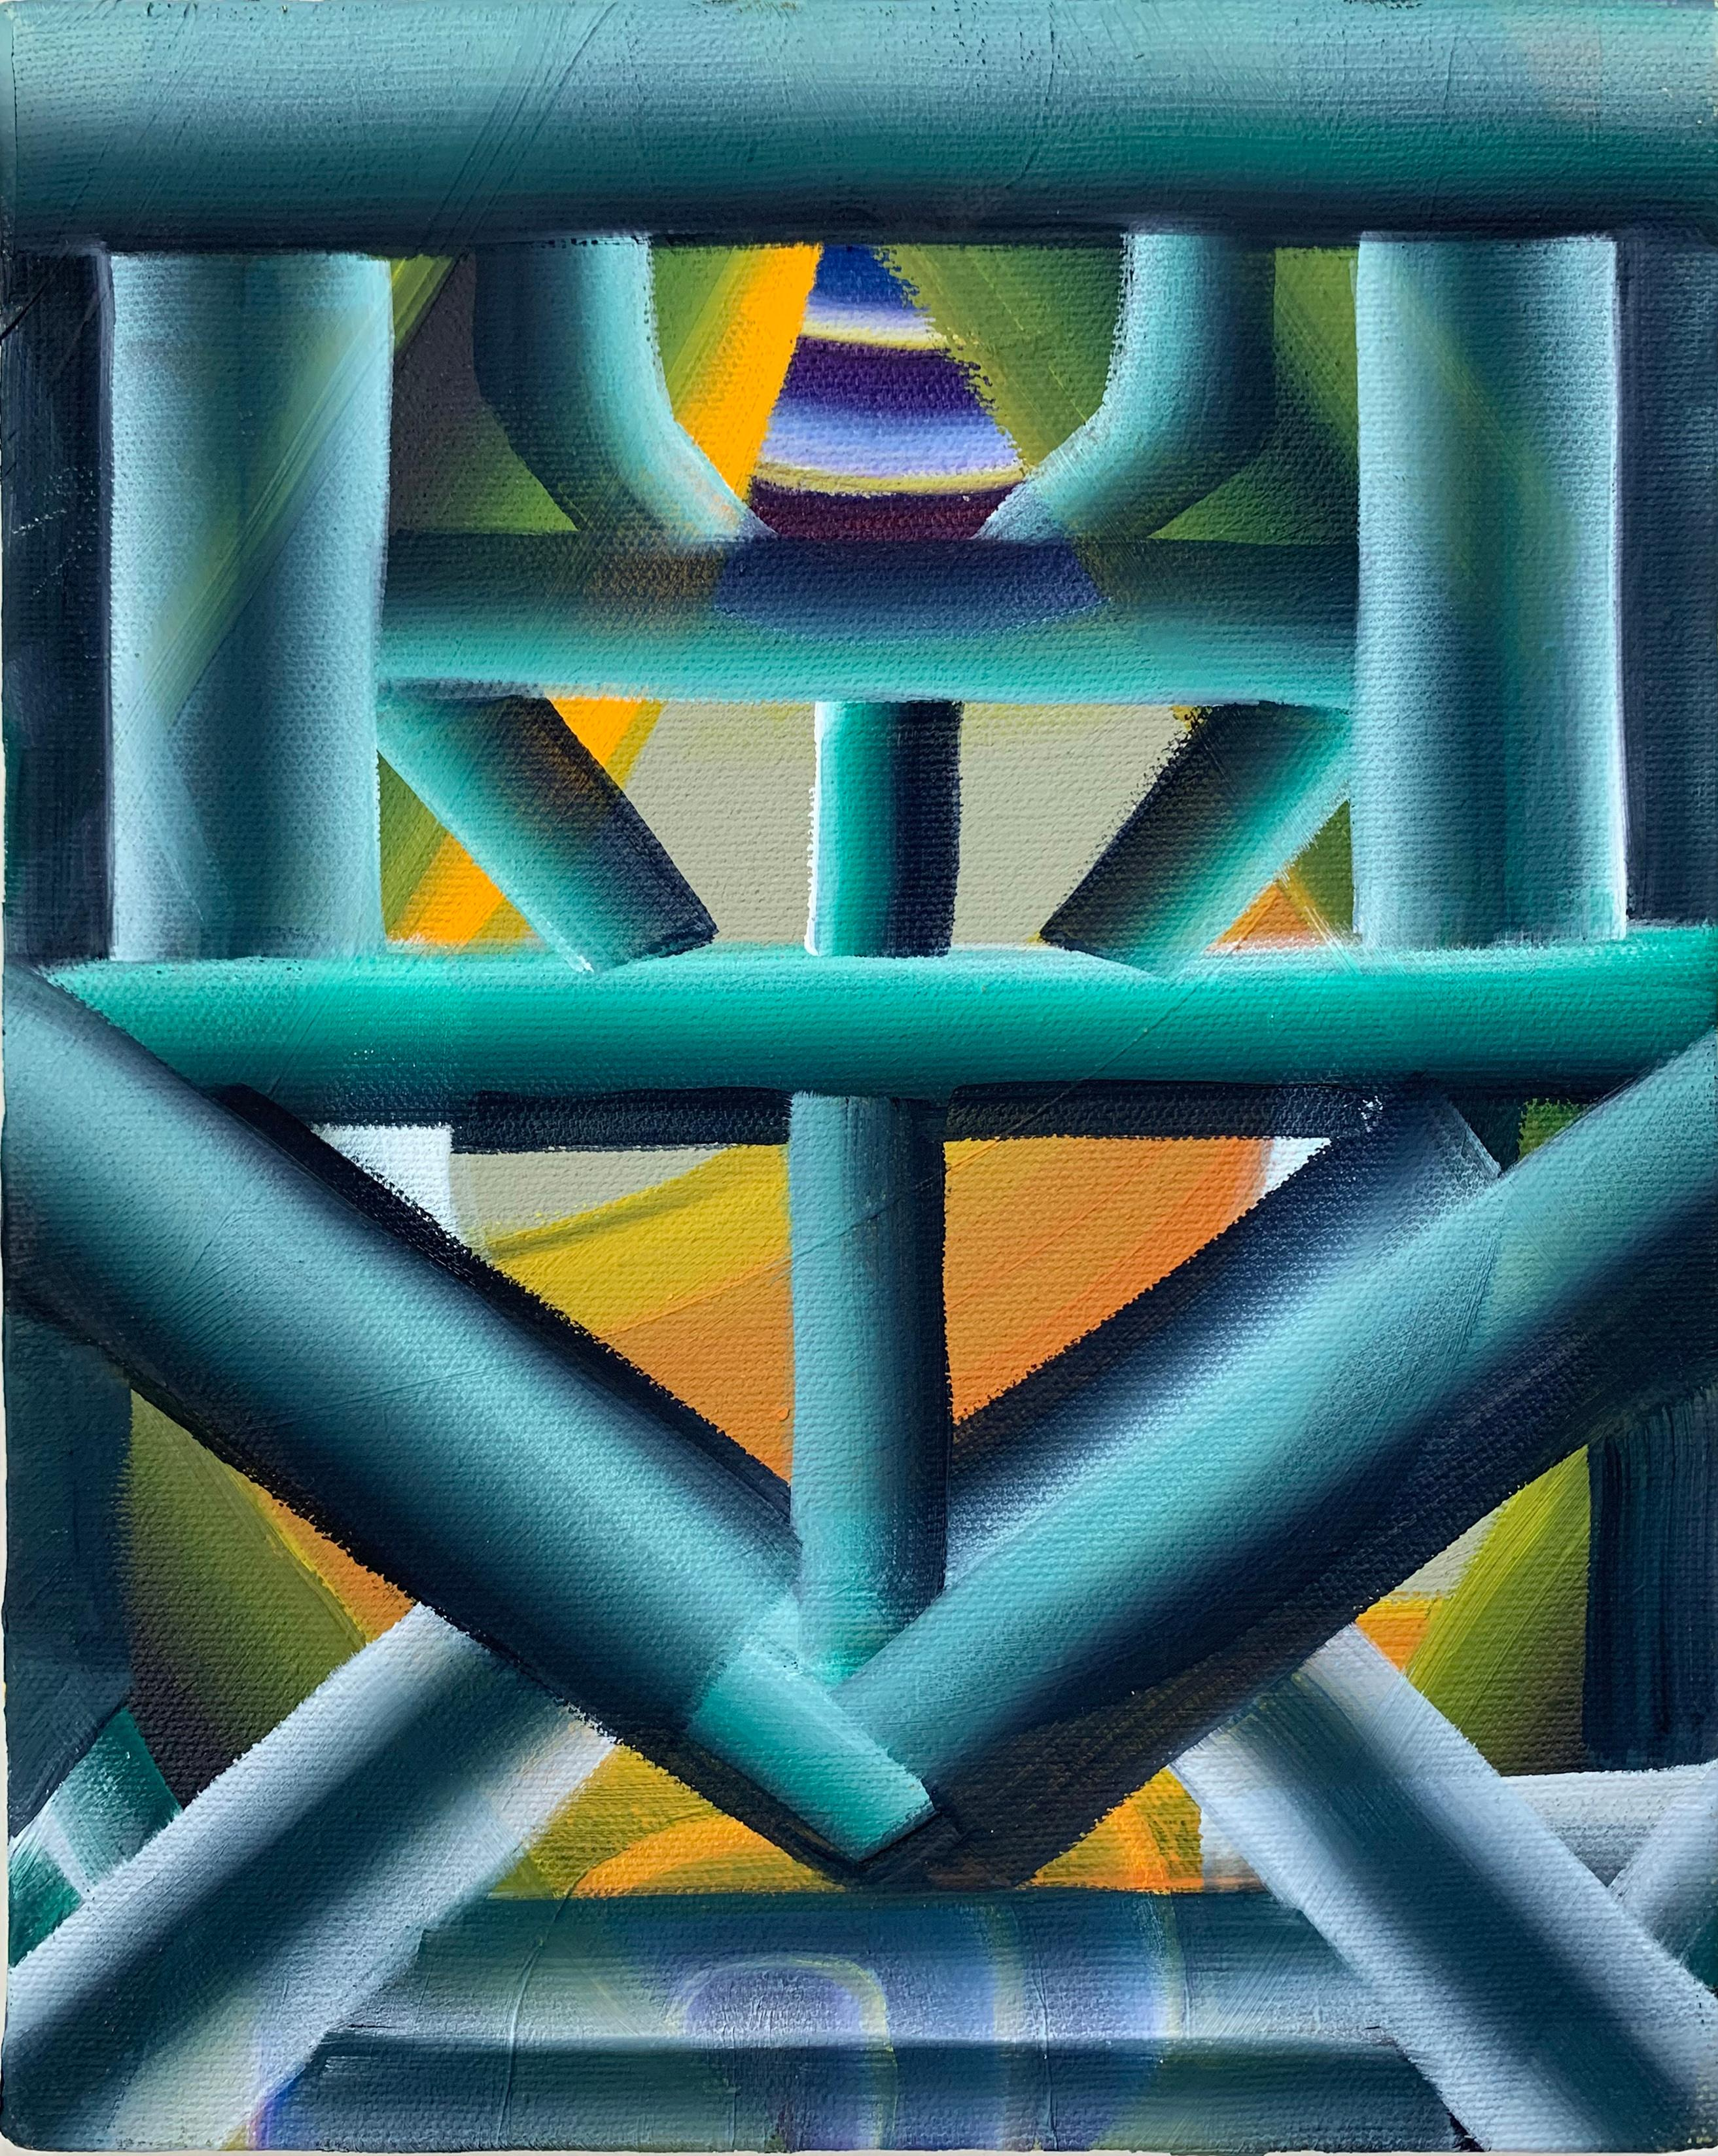 Each To Other, Oil on Canvas Painting, Abstract Geometric Pattern, Blue & Green